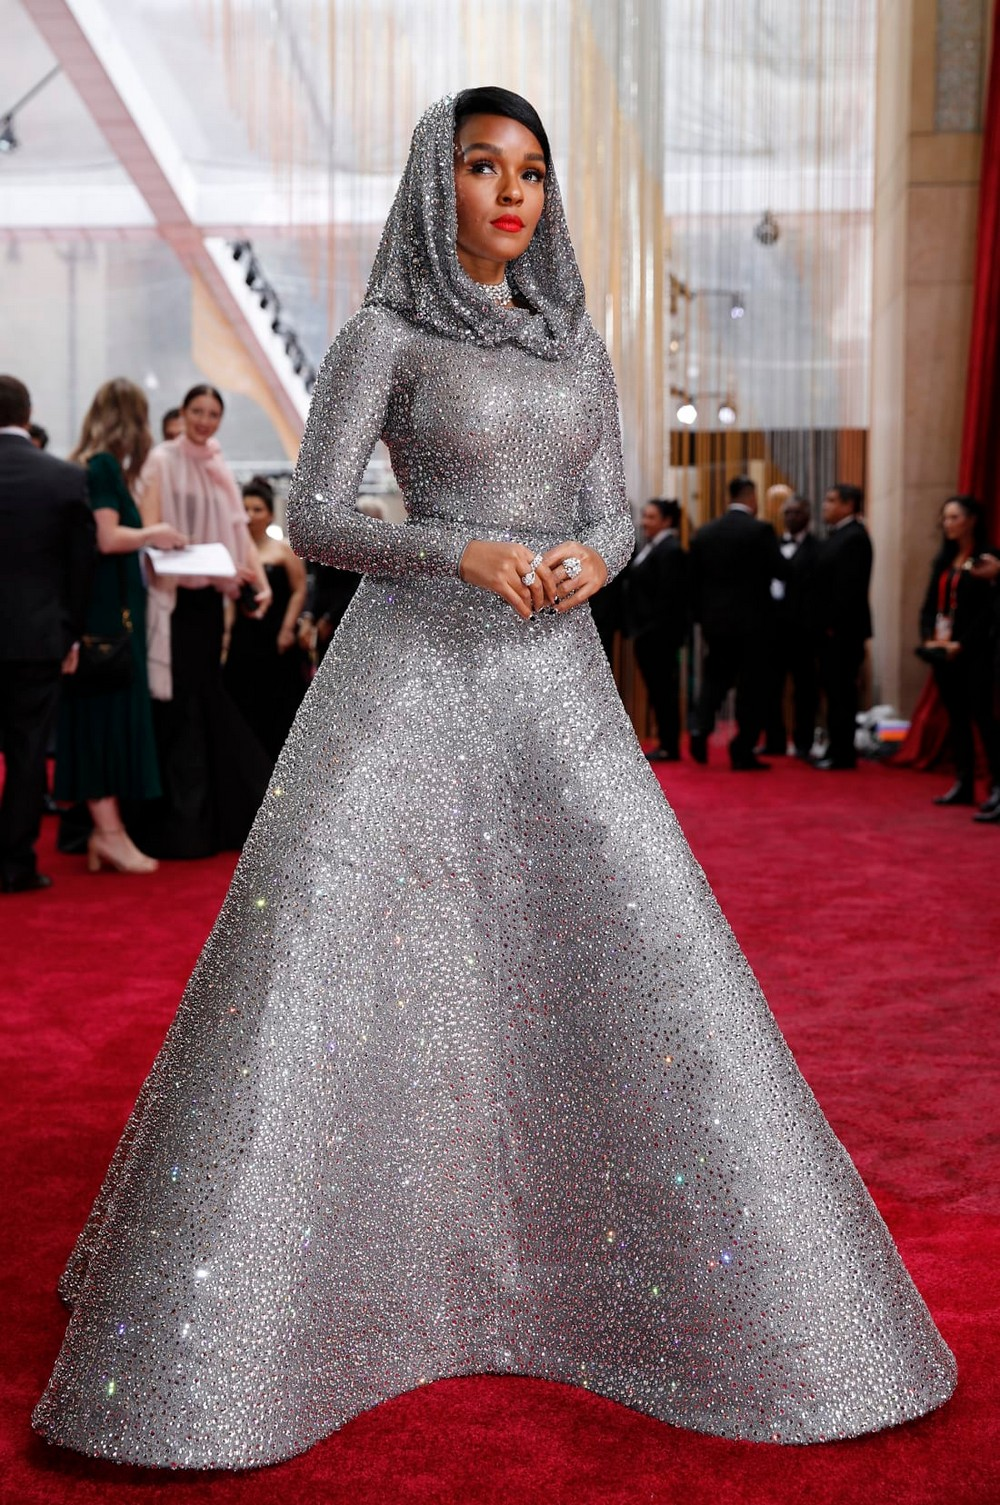 oscars 2020 Oscars 2020: Statement Sleeves in Fashion on the Red Carpet Oscars 2020 Sleeves were Certainly in Fashion at the Red Carpet 6